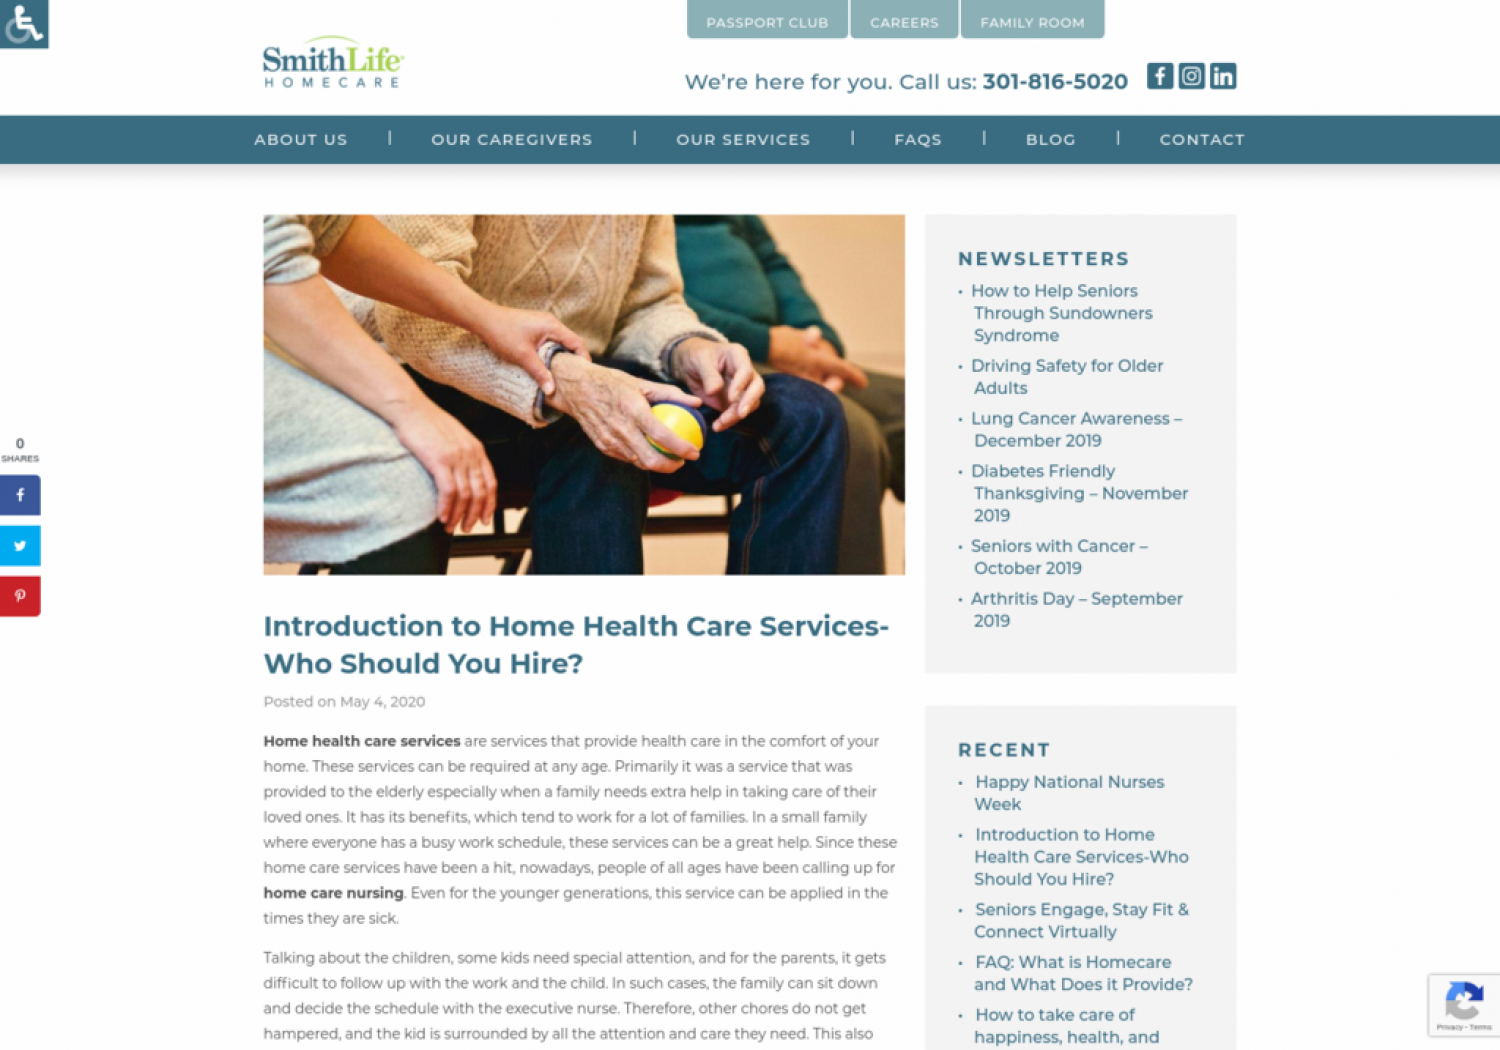 Introduction to Home Health Care Services-Who Should You Hire? Infographic